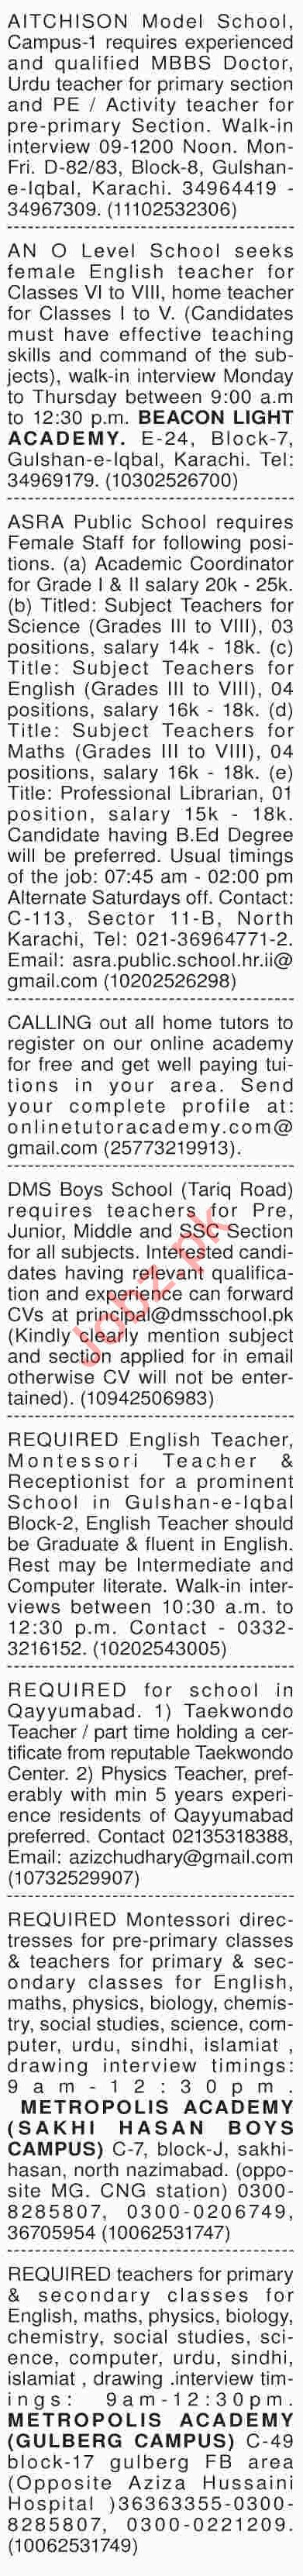 Dawn Sunday Classified Ads 17th March 2019 for Teachers